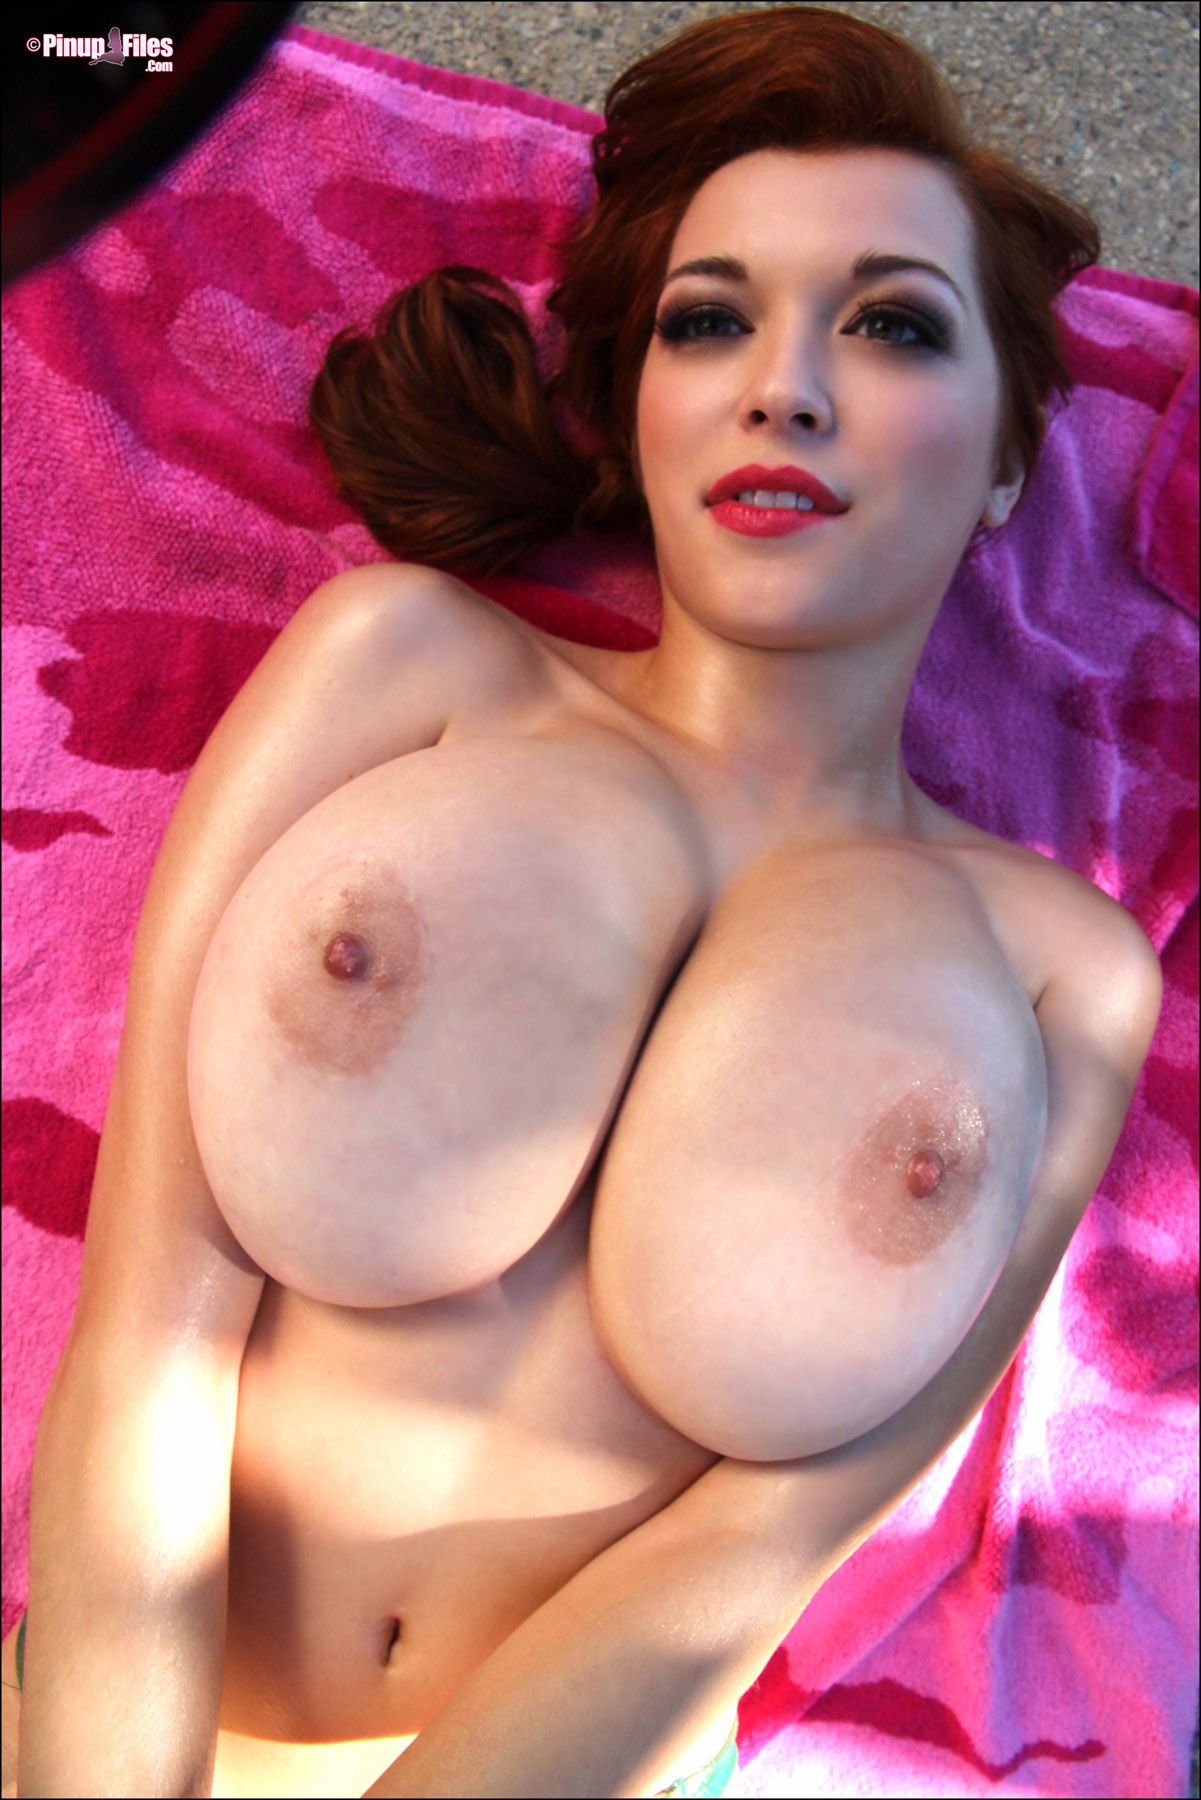 Asian pinup large boobs girl nude pussy college